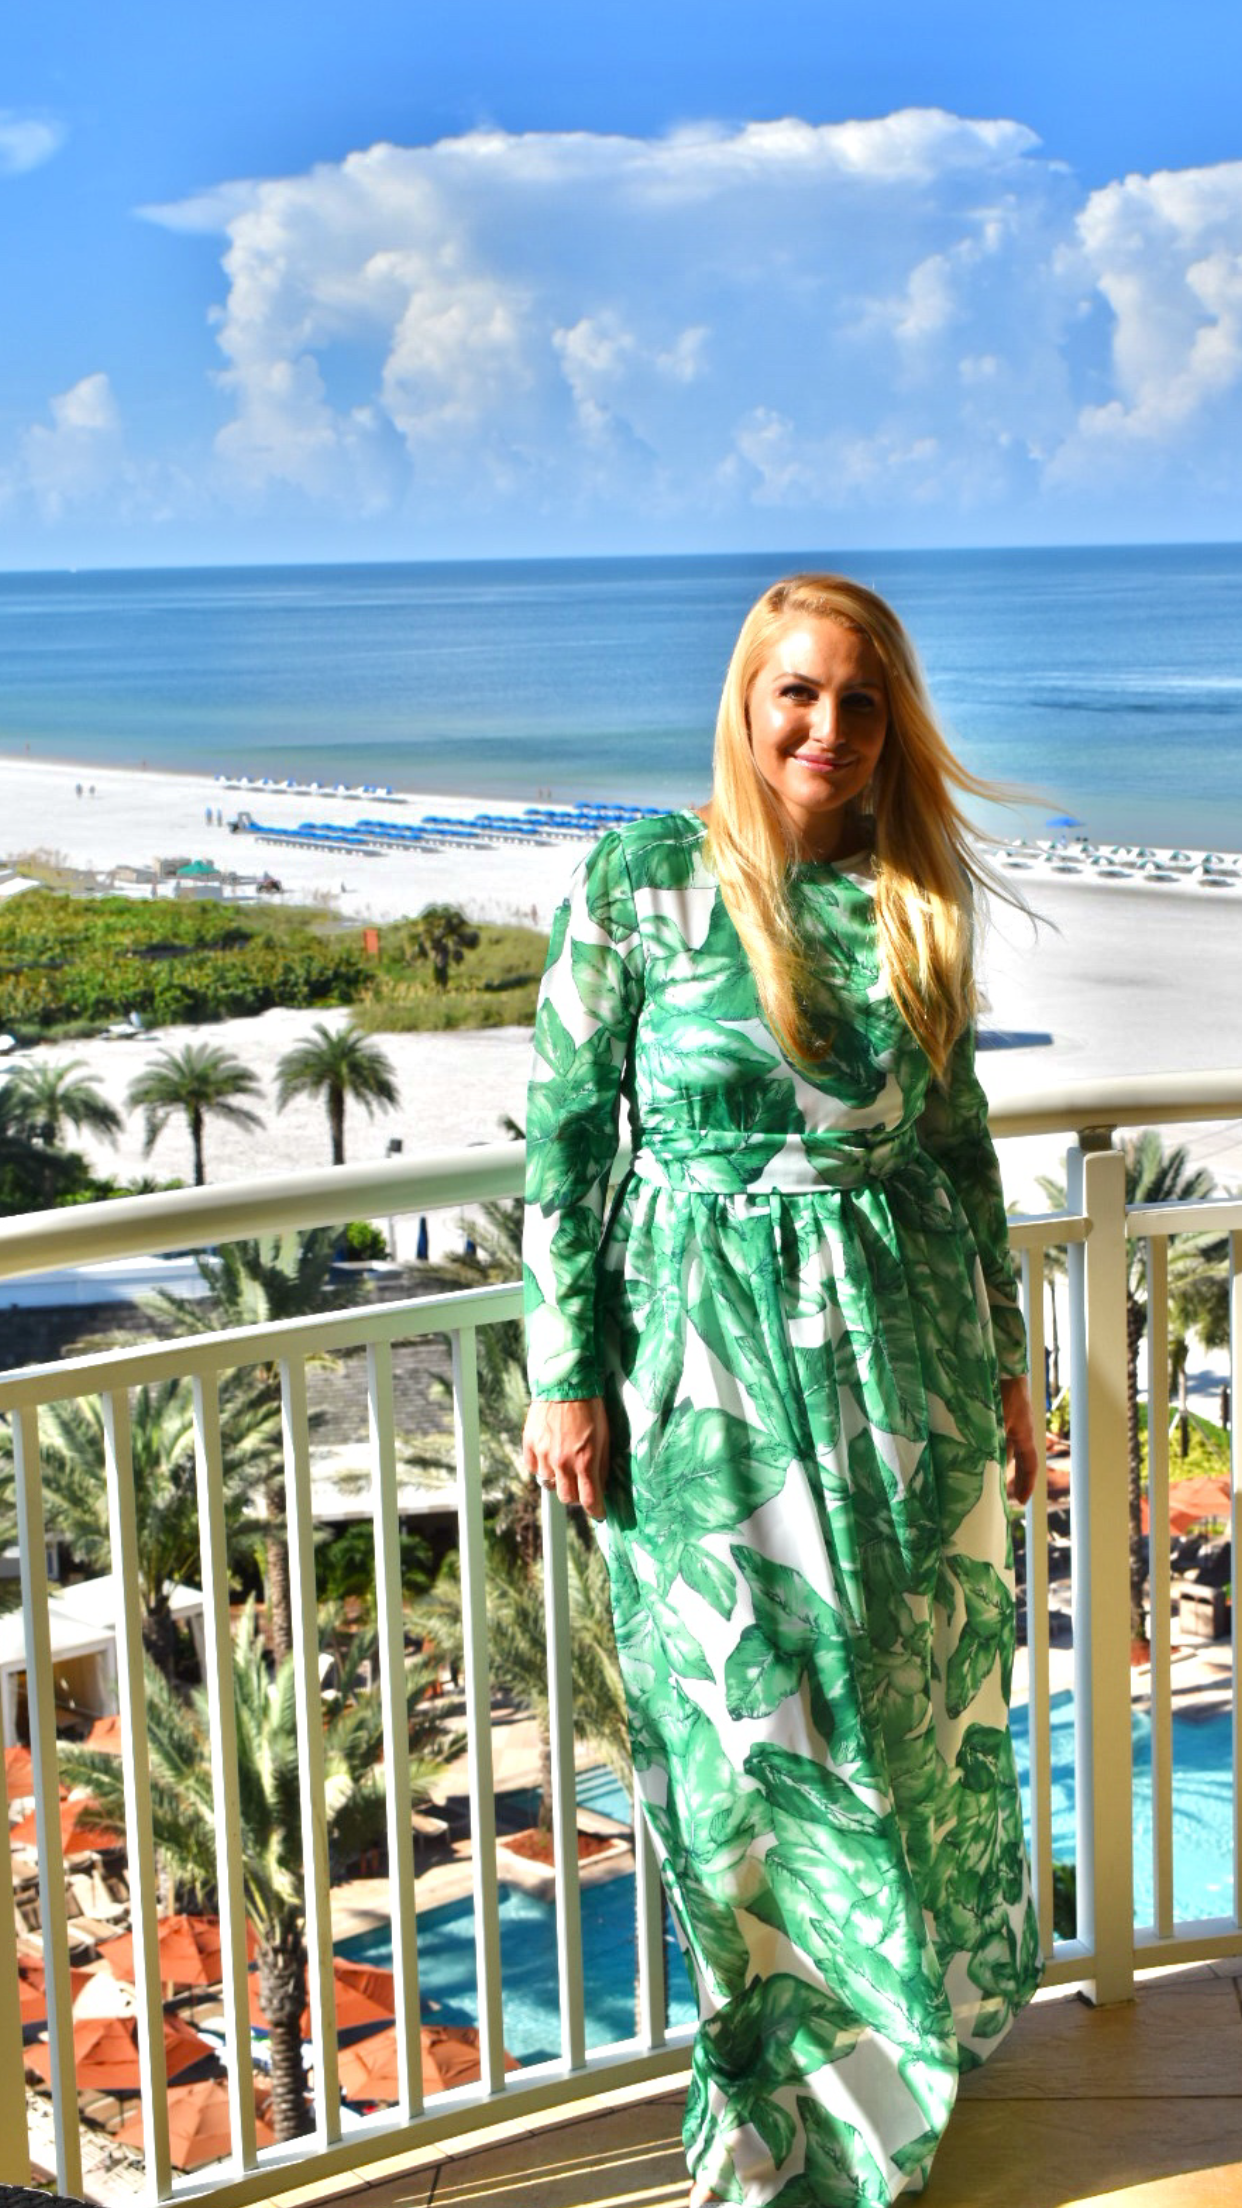 Palm leaf print dress, Shein Palm Leaf print dress, Green and White Dress in Marco Island Florida